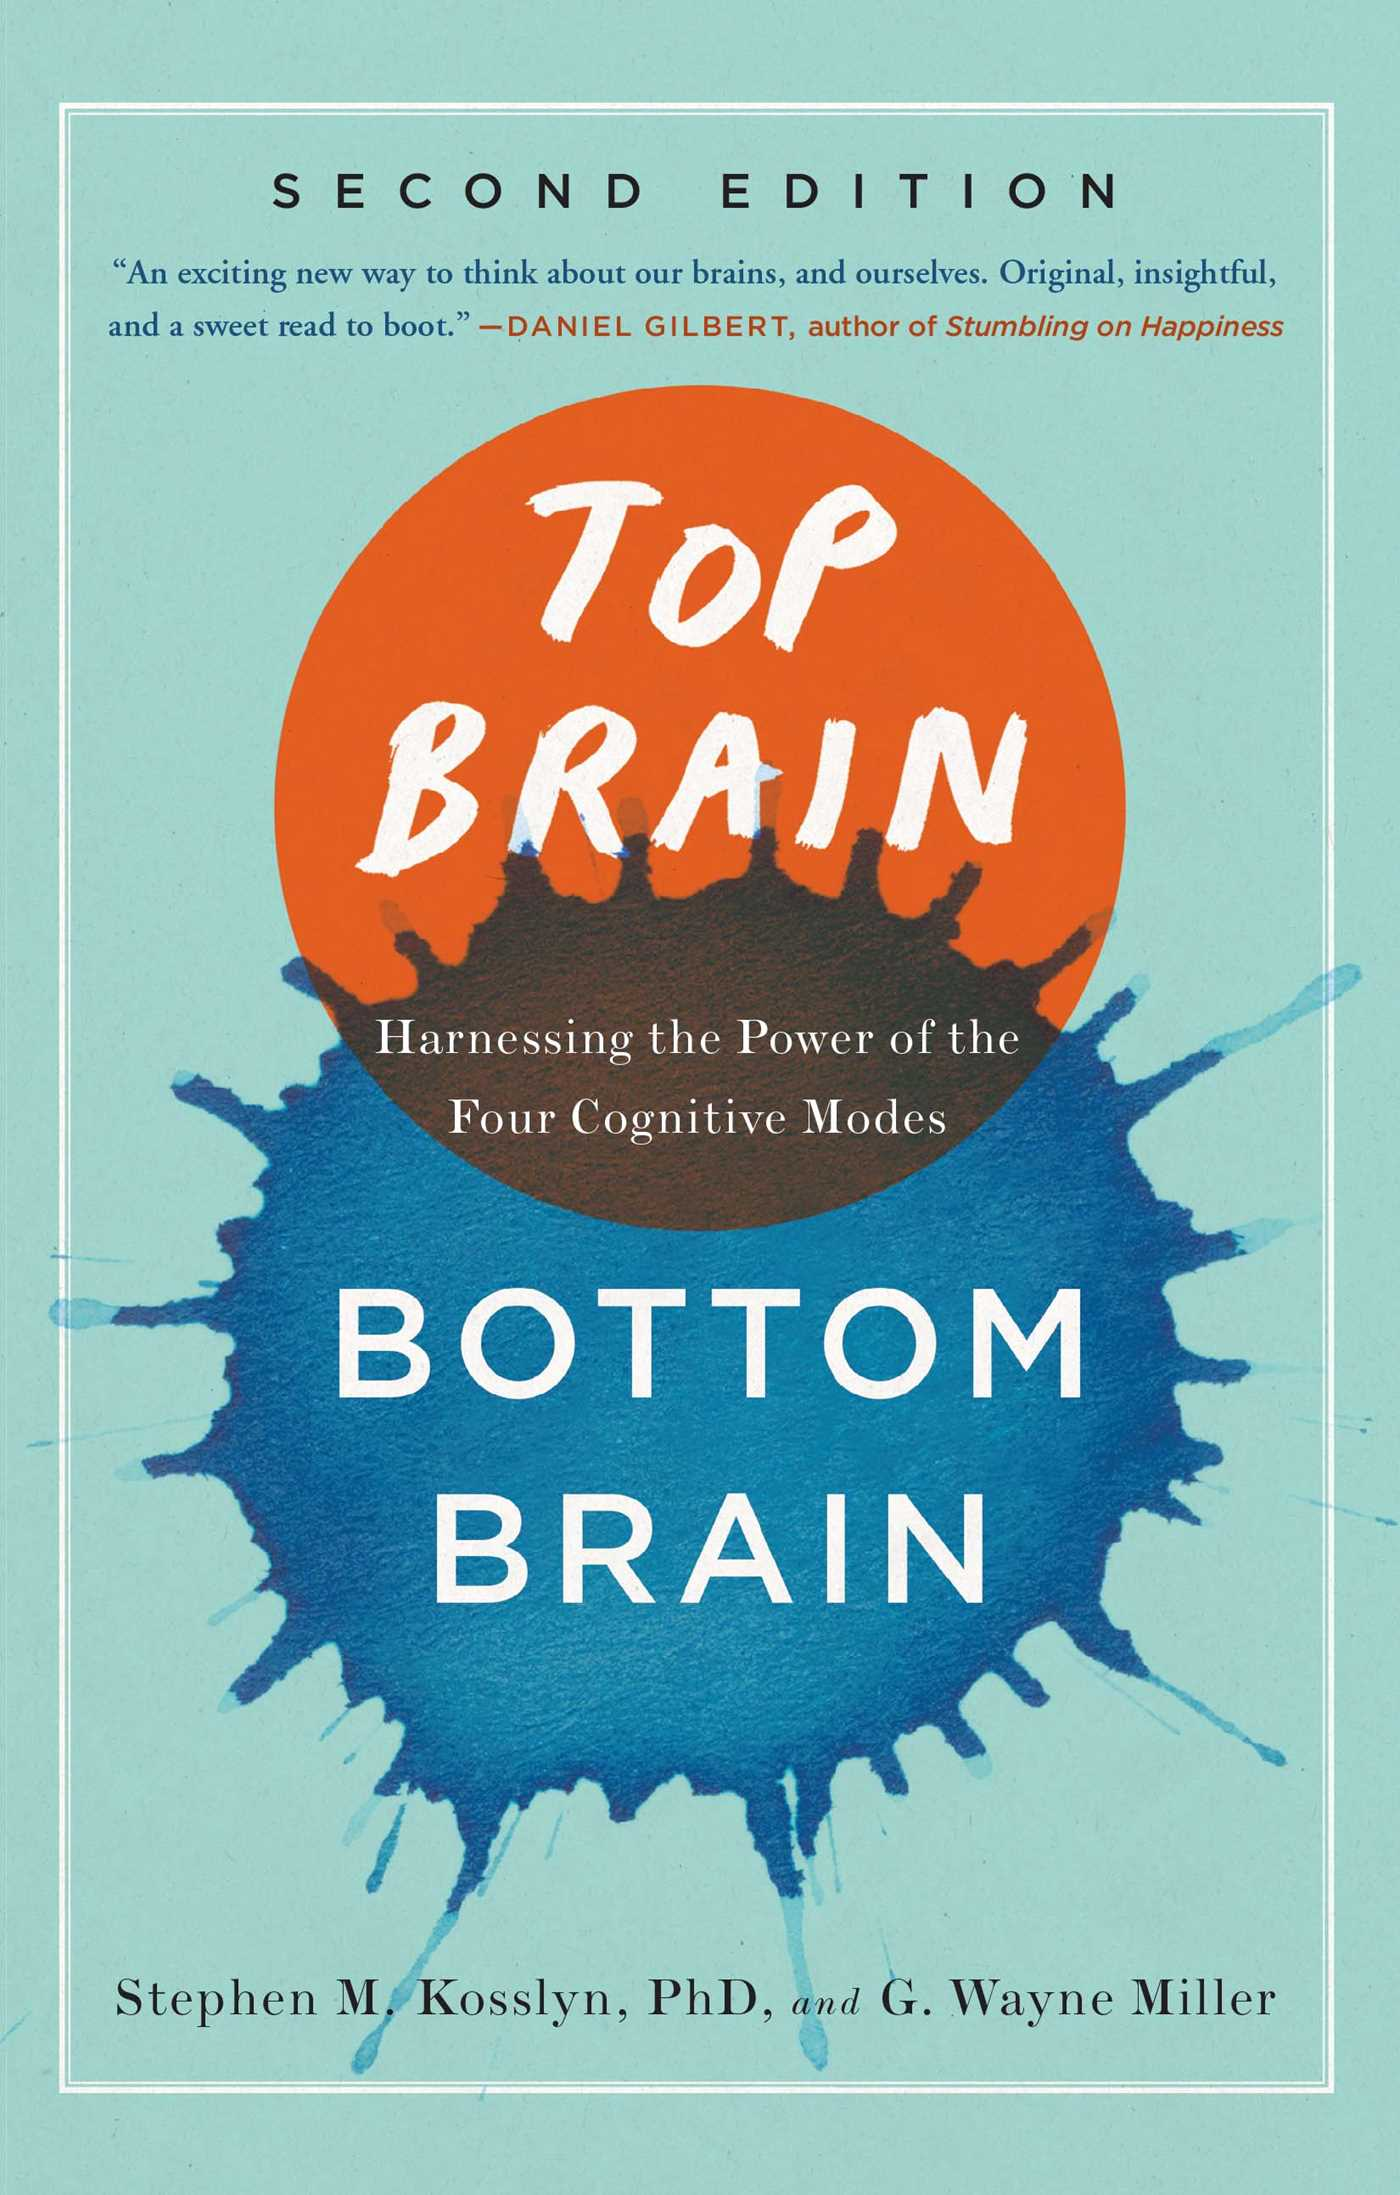 Top brain bottom brain book by stephen kosslyn g wayne miller top brain bottom brain 9781451645118 hr fandeluxe Image collections